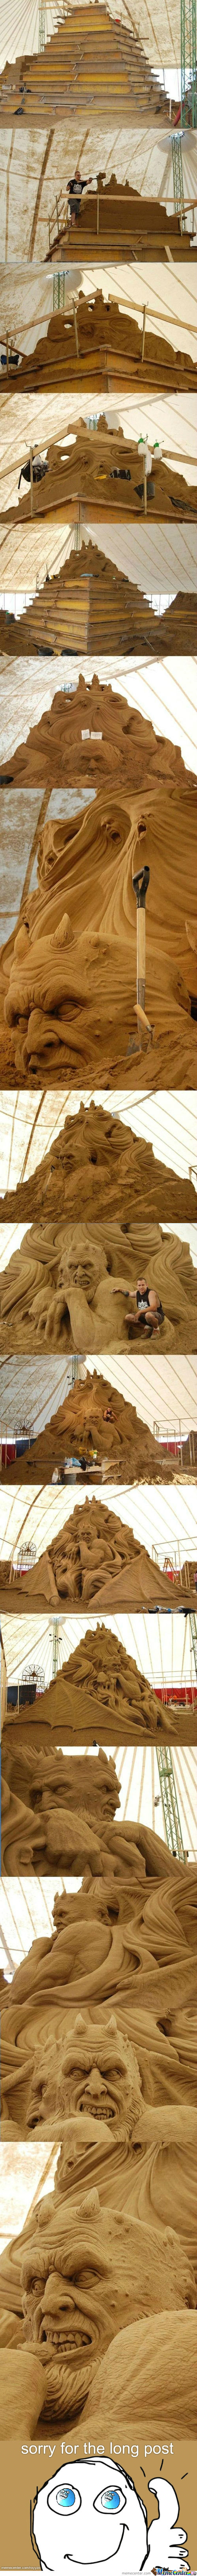 Epic Sand Sculpture